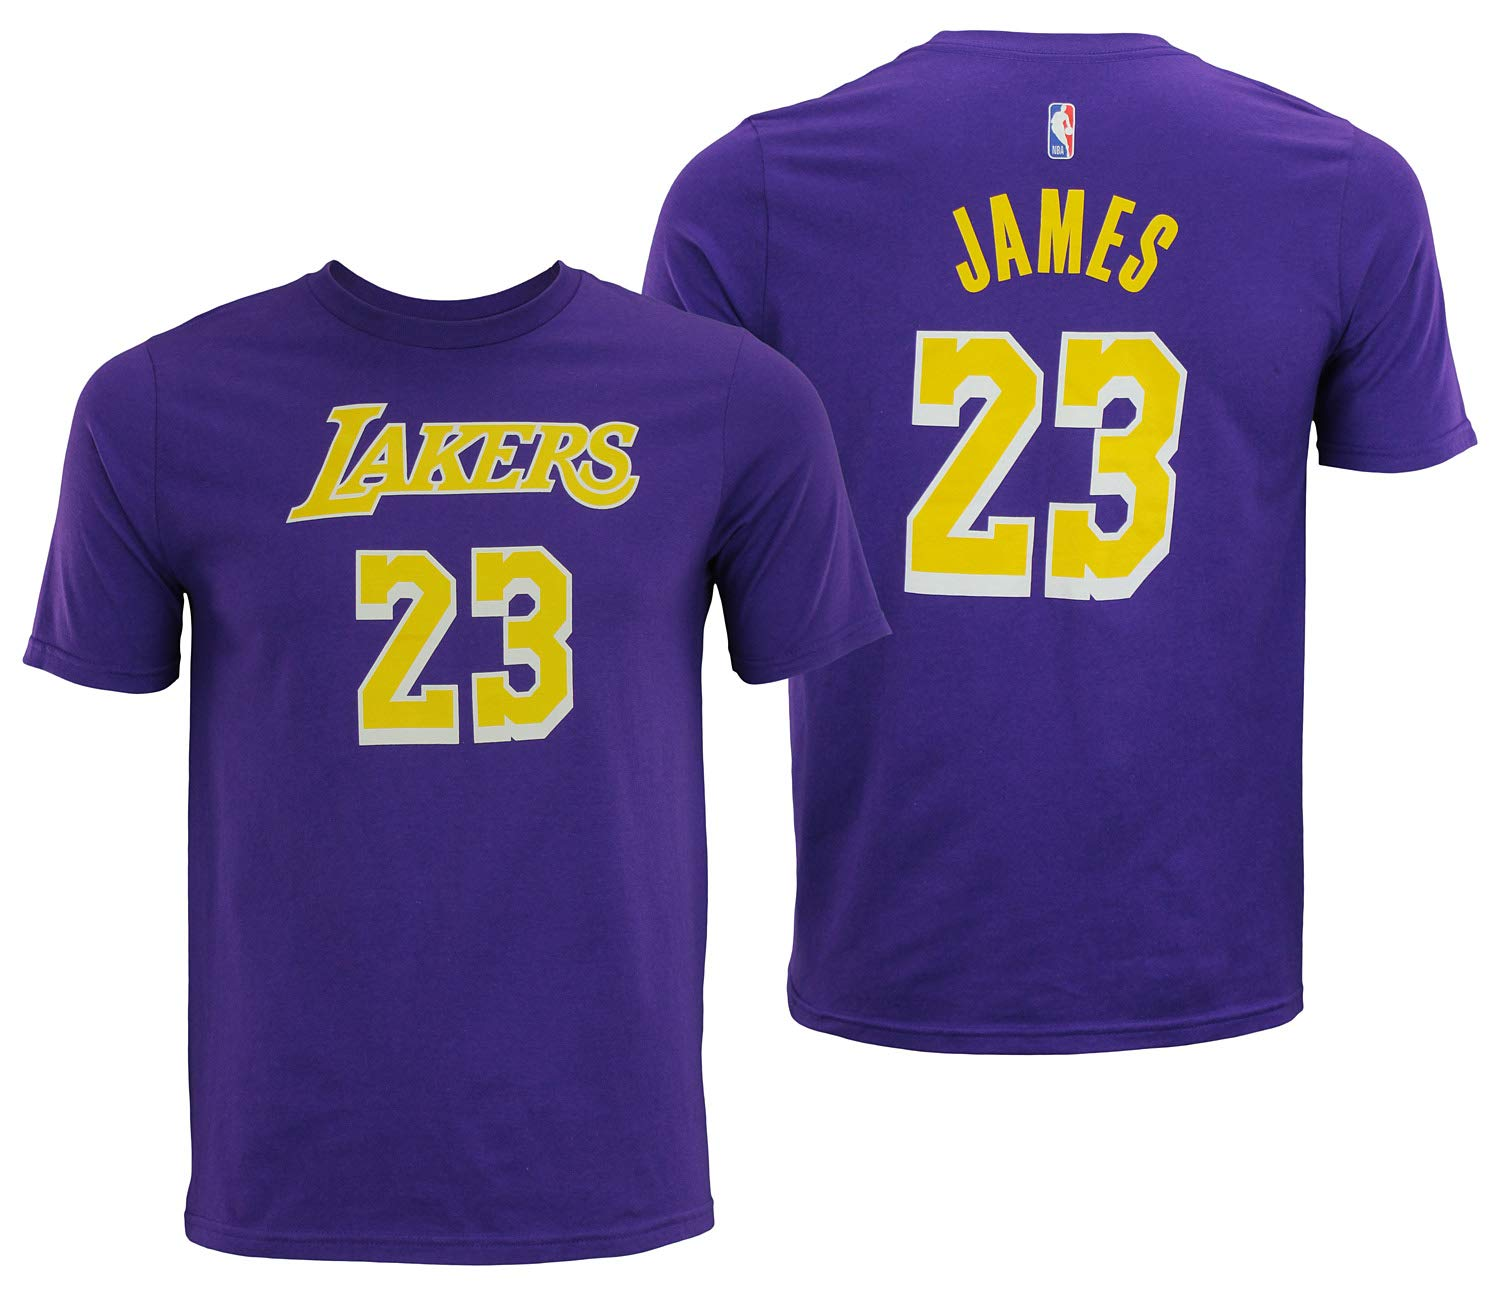 release date 7e29a 87024 NBA Youth Los Angeles Lakers Lebron James Player Tee, Pick A Color